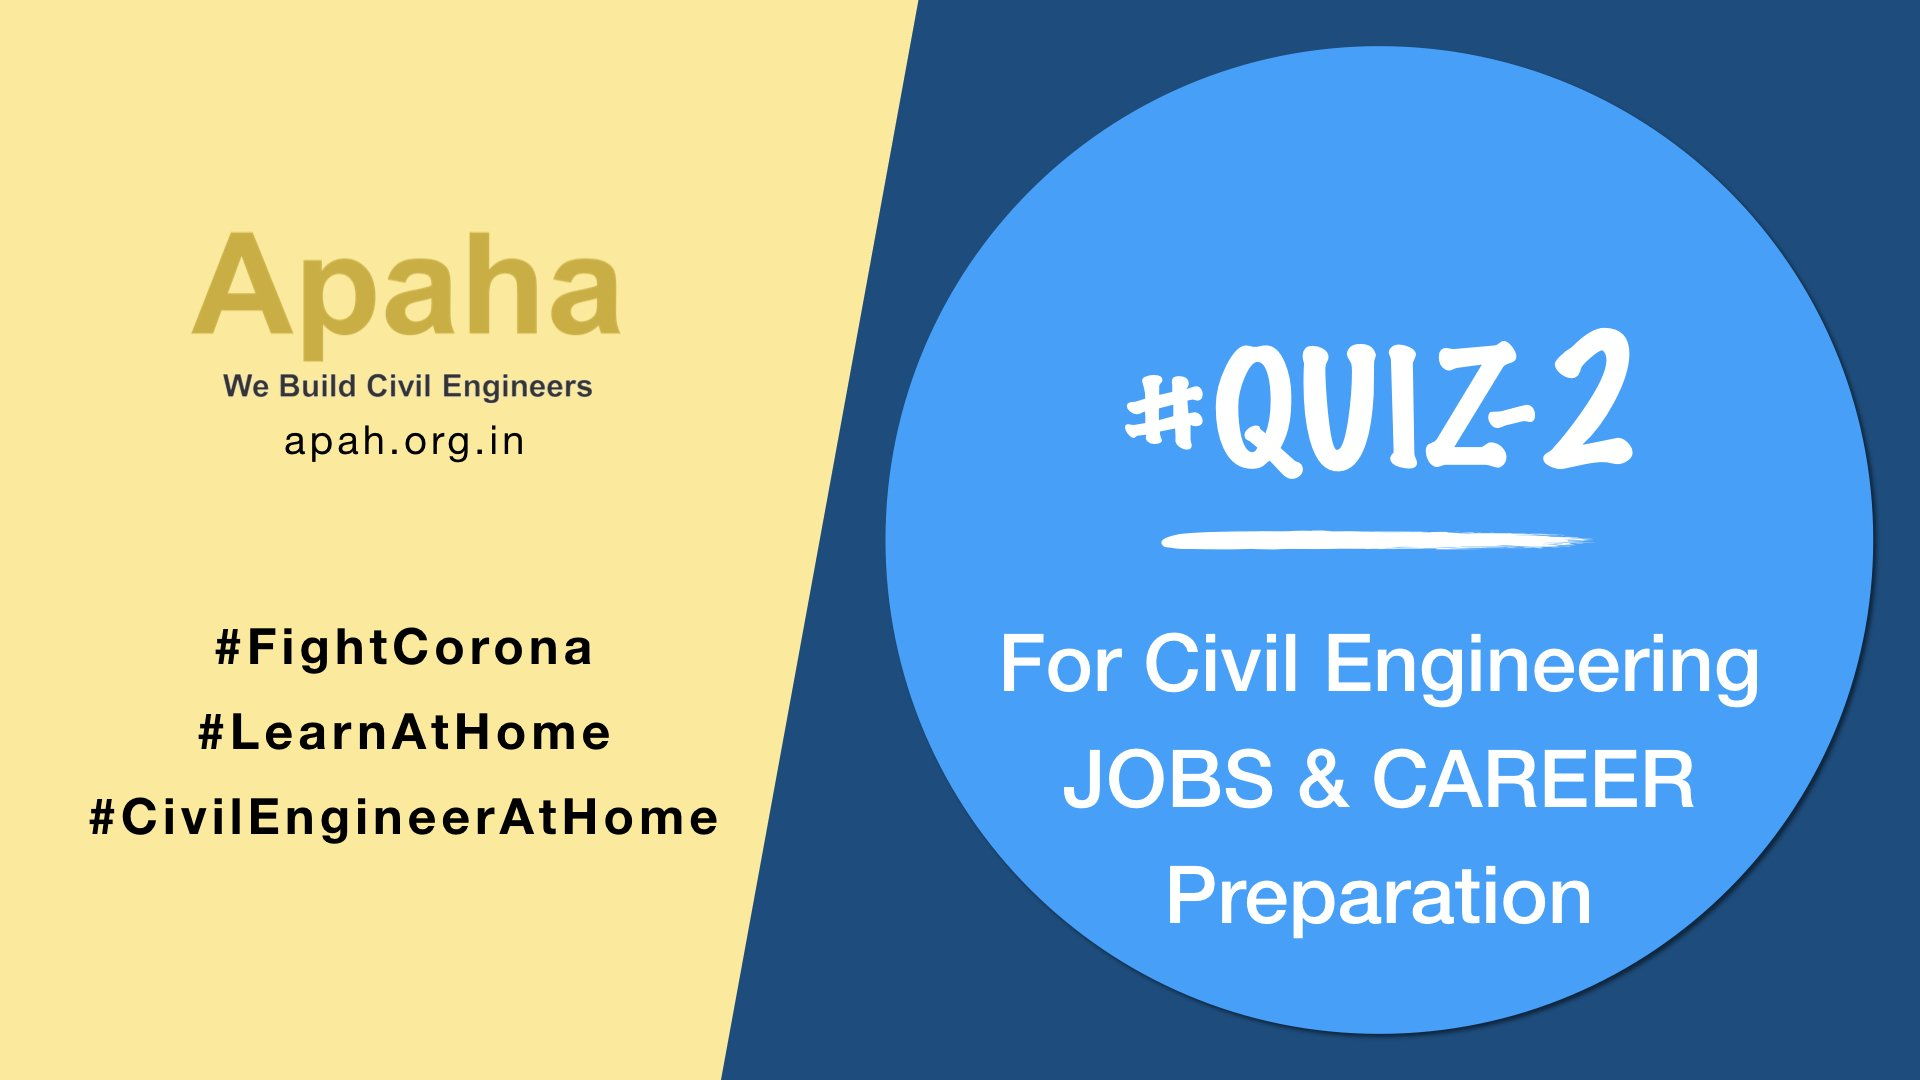 # Quiz-2_For Civil Engineering JOB & Career Preparation, Civil Engineering Career, Civil Engineering Job, Civil Engineering Career Training, Civil Engineering Job Training, Apaha Trainers and Consultants, Institute of Construction Project Management